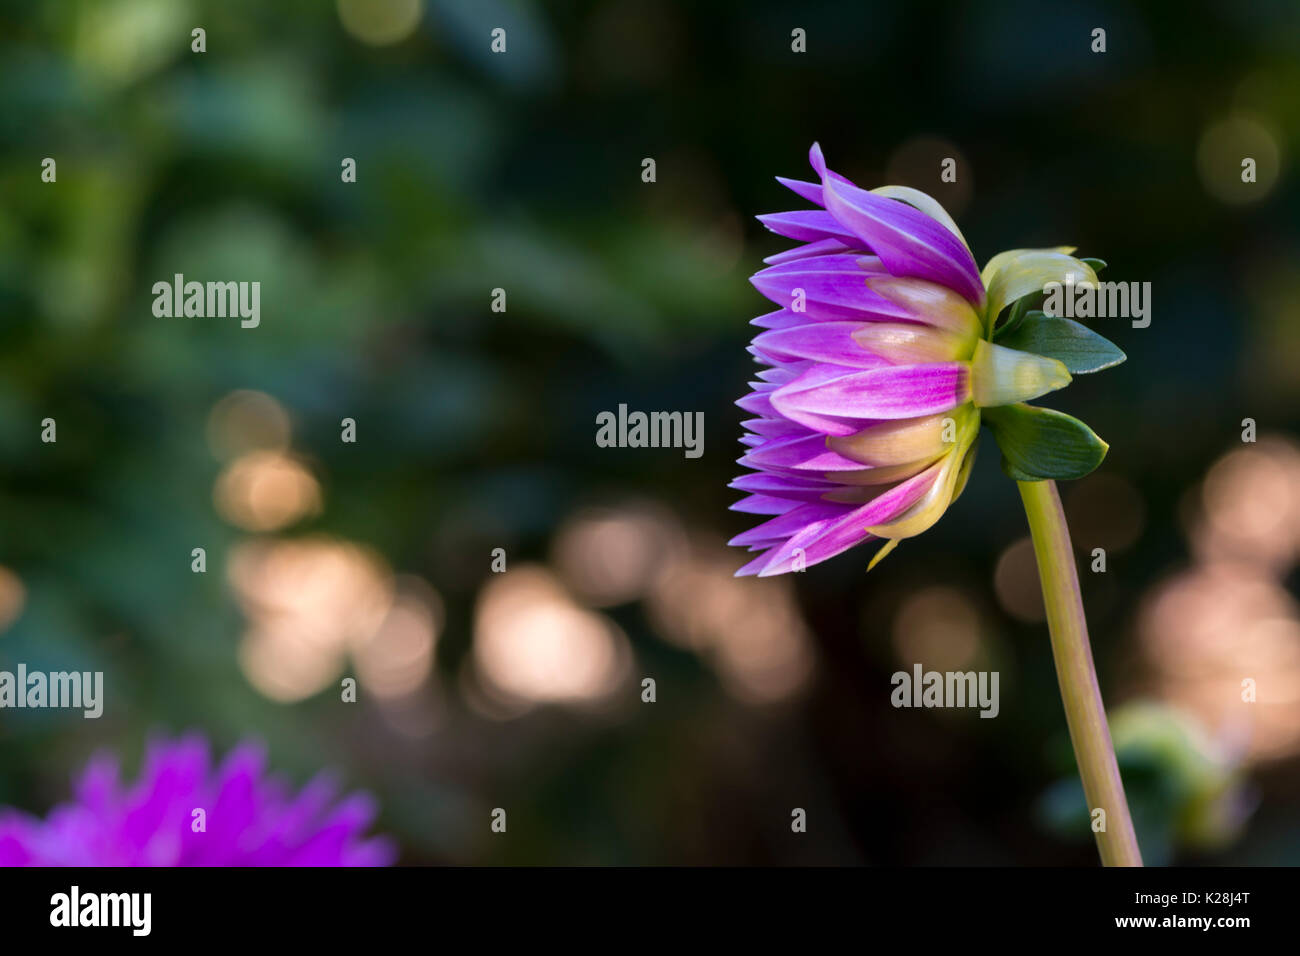 Side view of a small newly formed blooming purple Aitara Perplex Dahlia growing in it's natural environment in the garden. - Stock Image